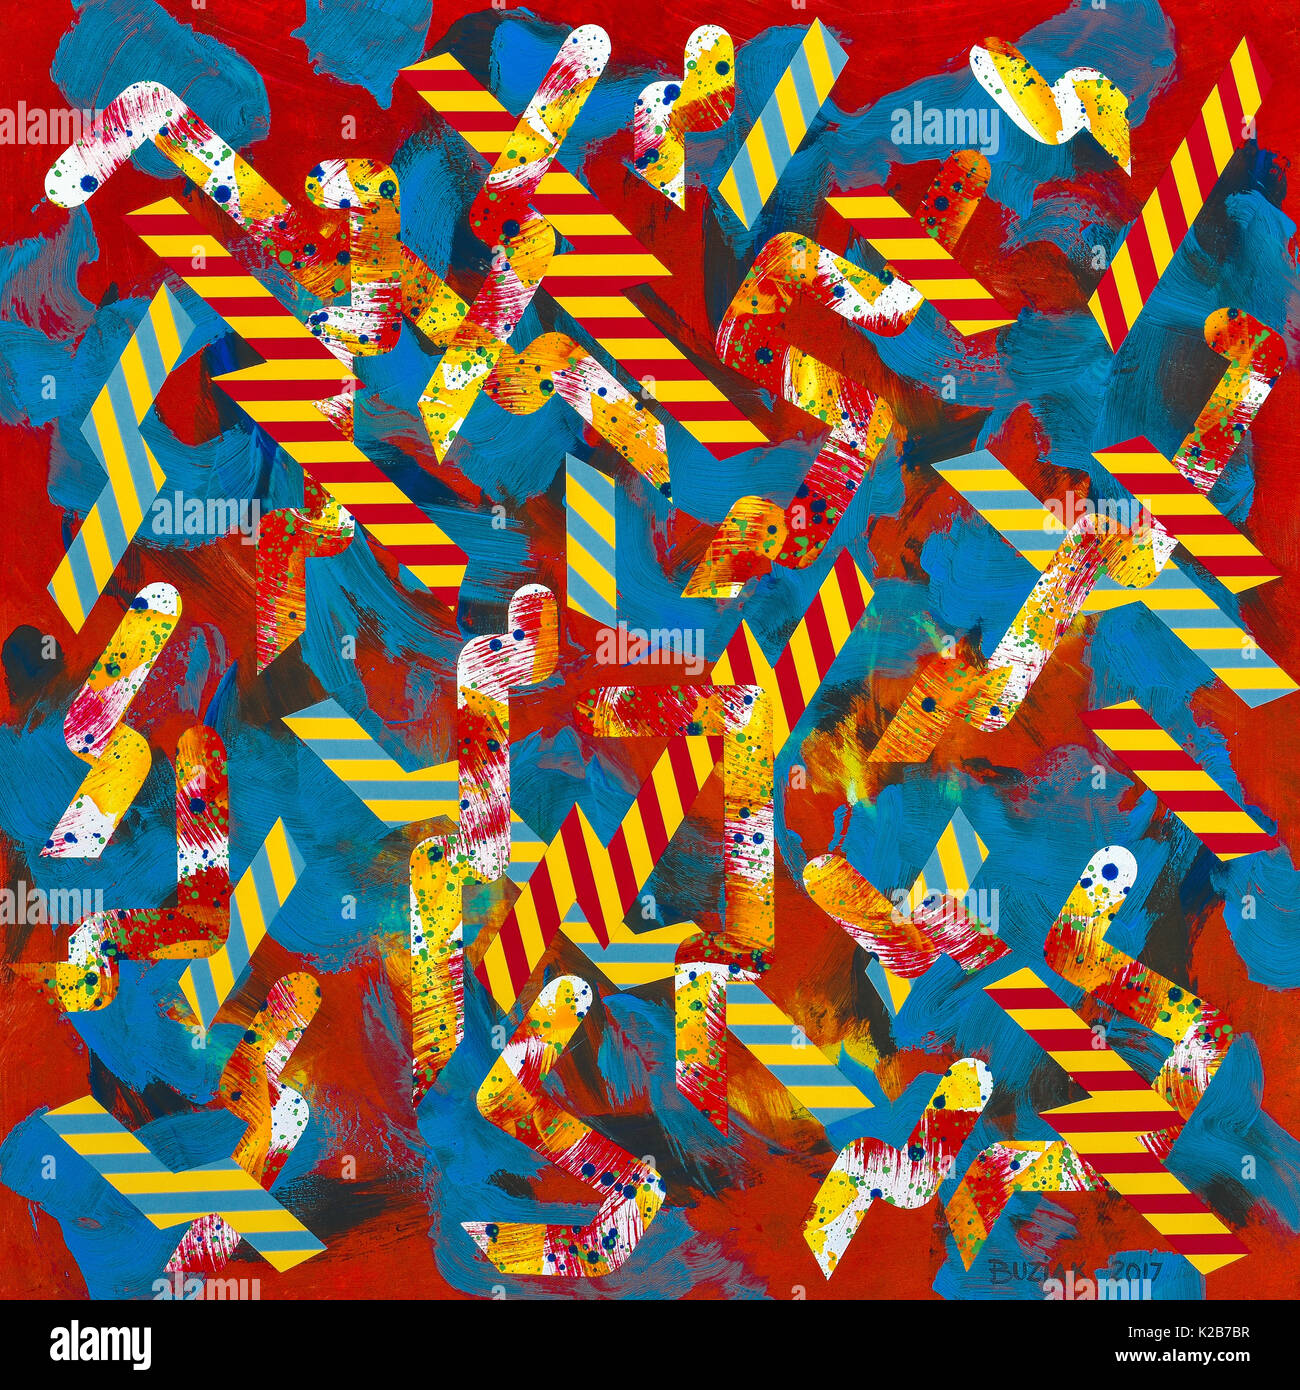 'Snakes and Ladders' - abstract artwork by Ed Buziak. - Stock Image